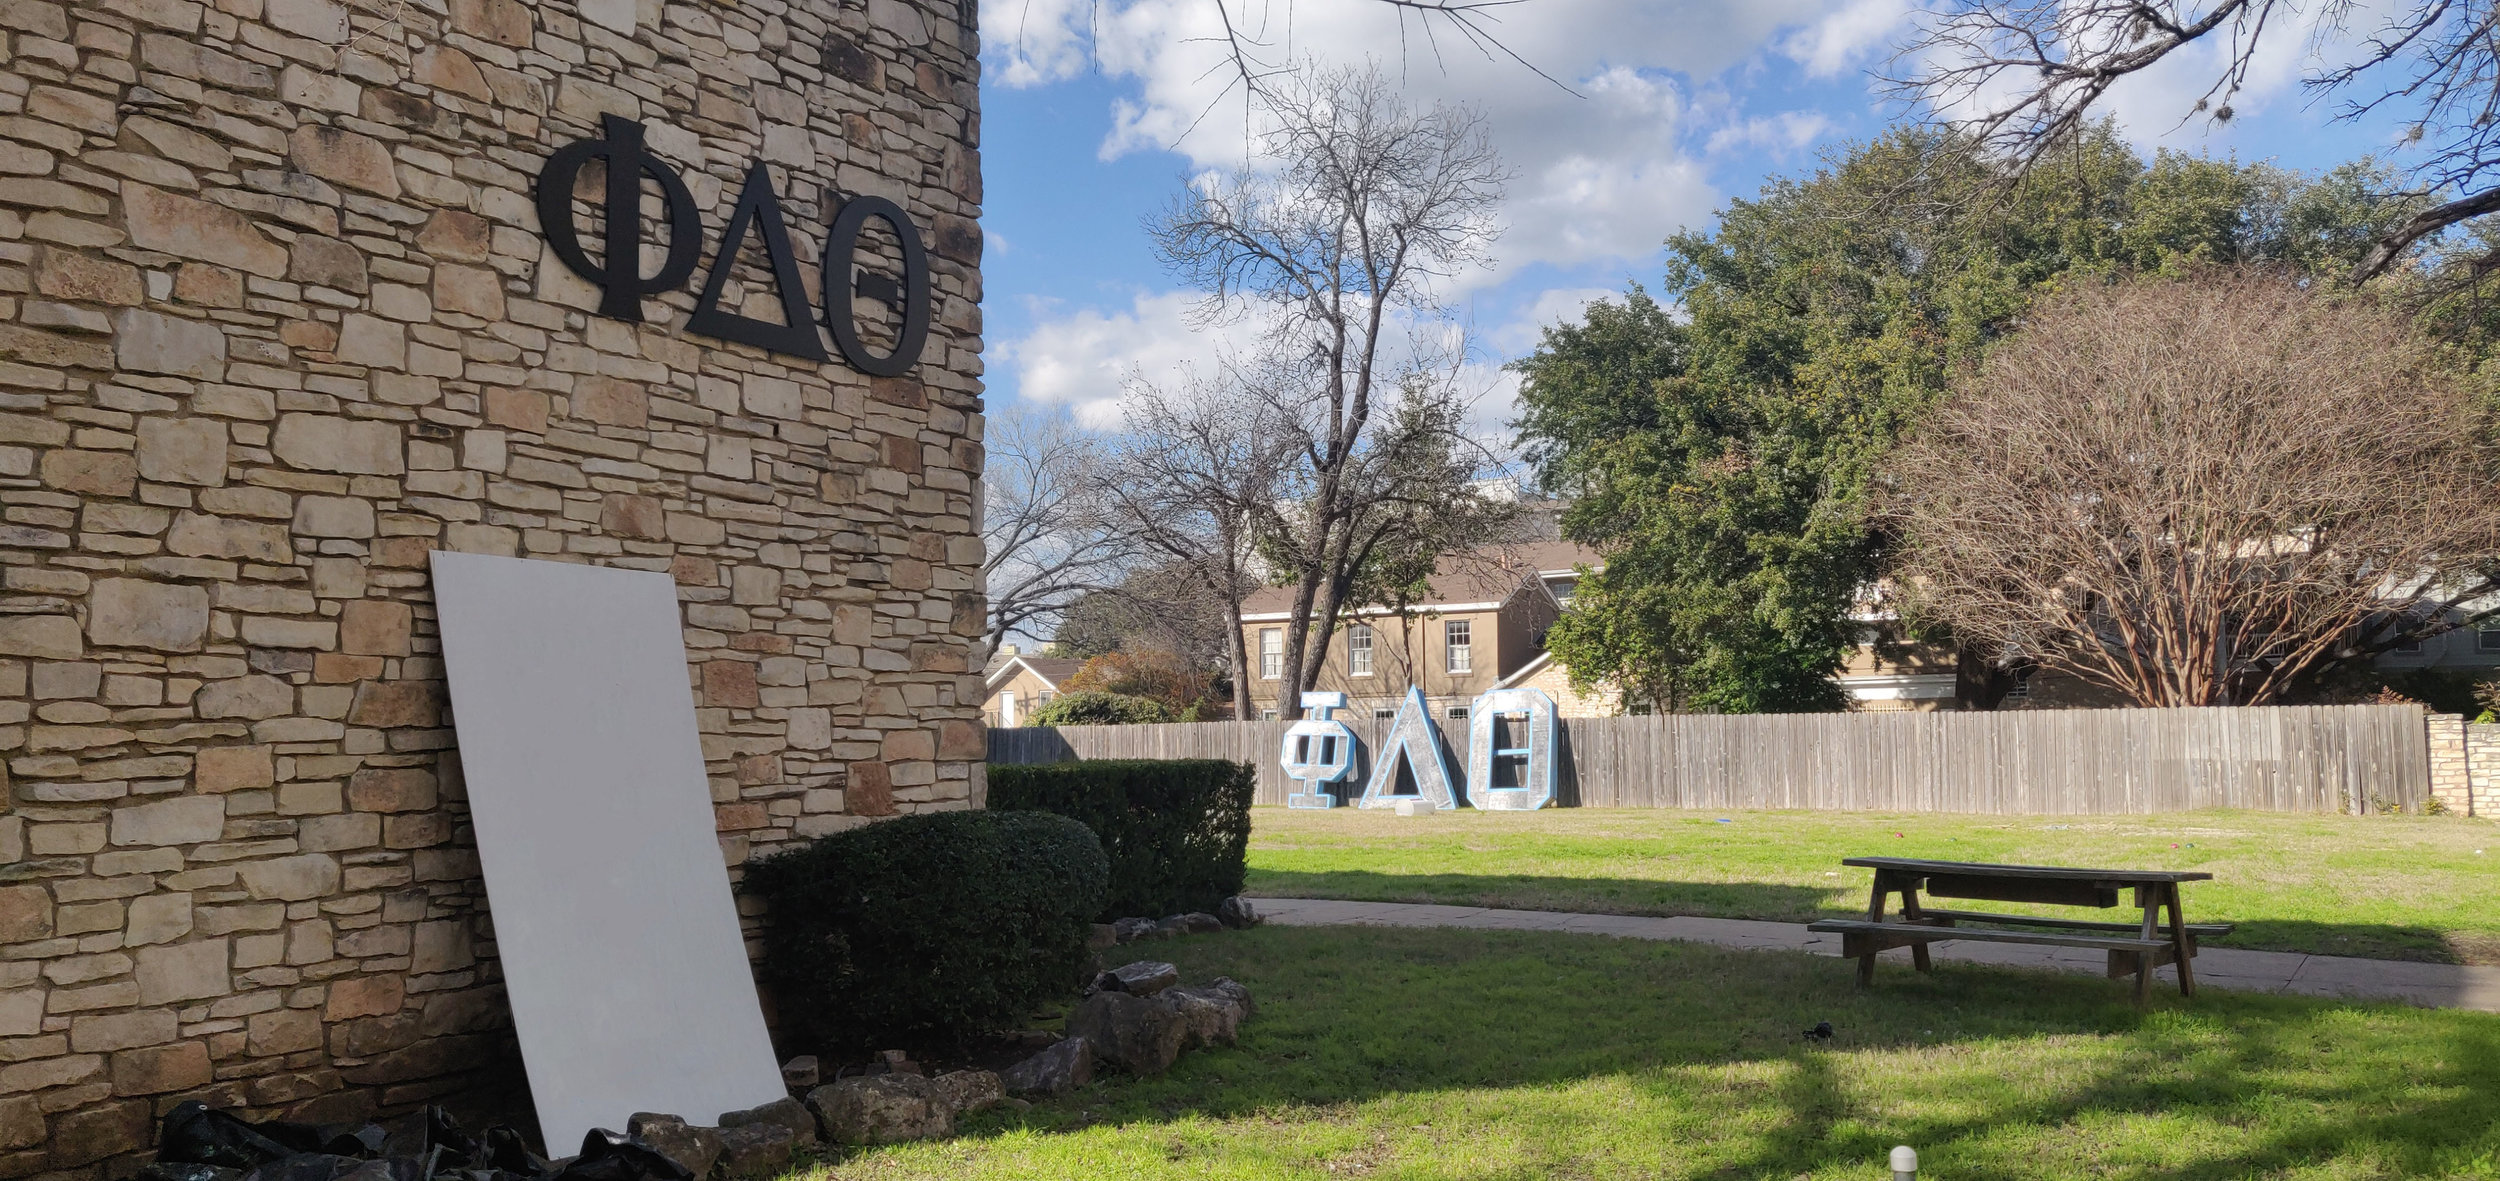 Phi Delta Theta   Texas Beta Chapter  Est. 1883   Learn more